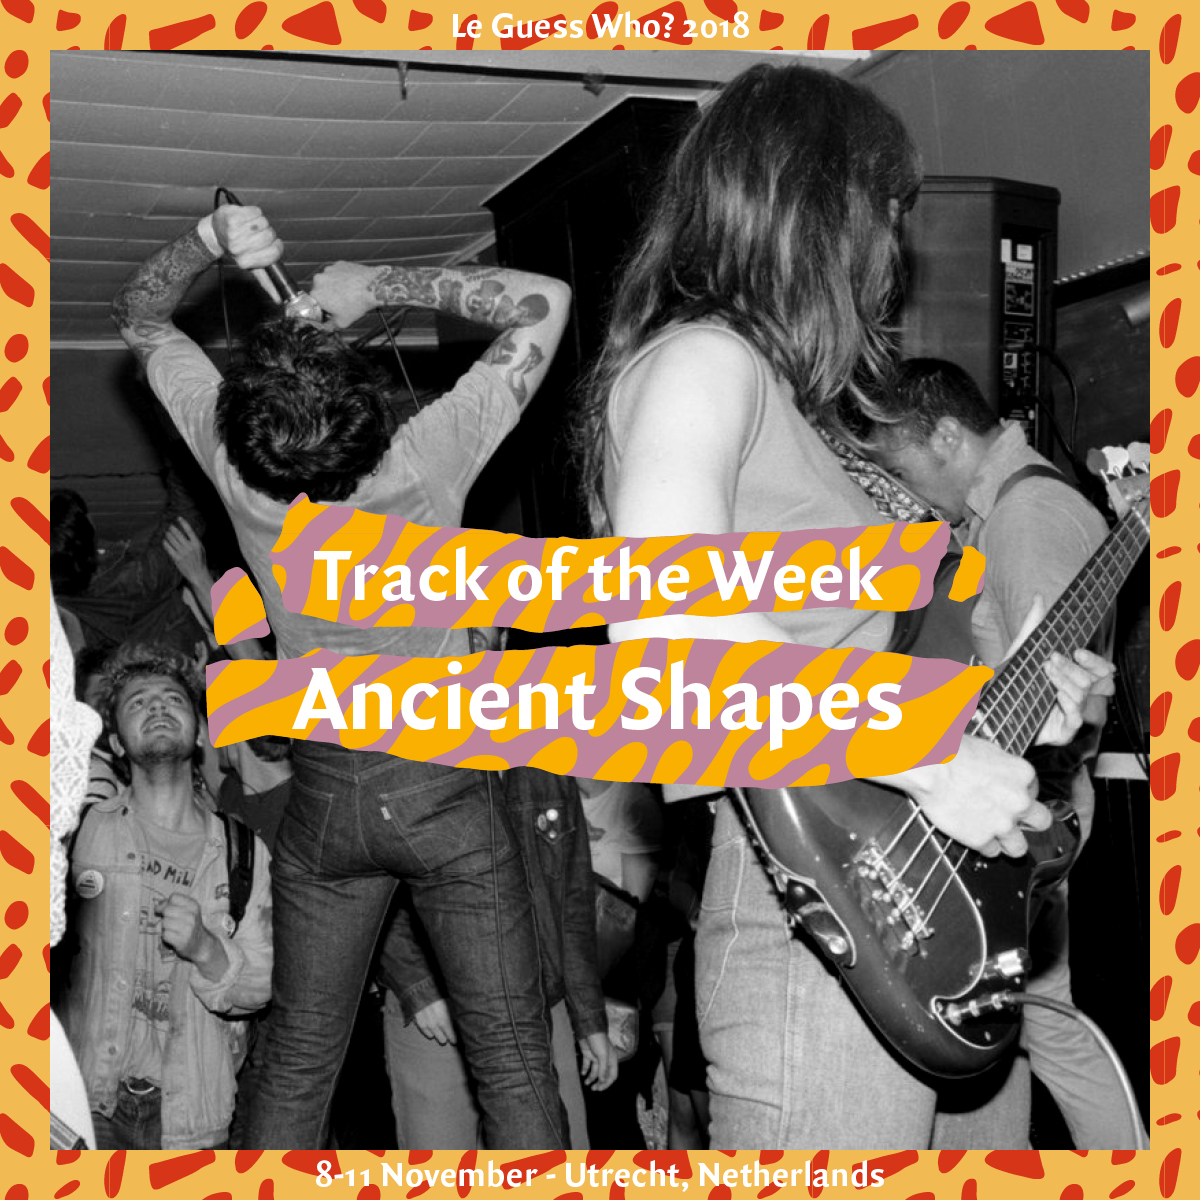 Track of the Week #11: Ancient Shapes - 'Public Hymns'